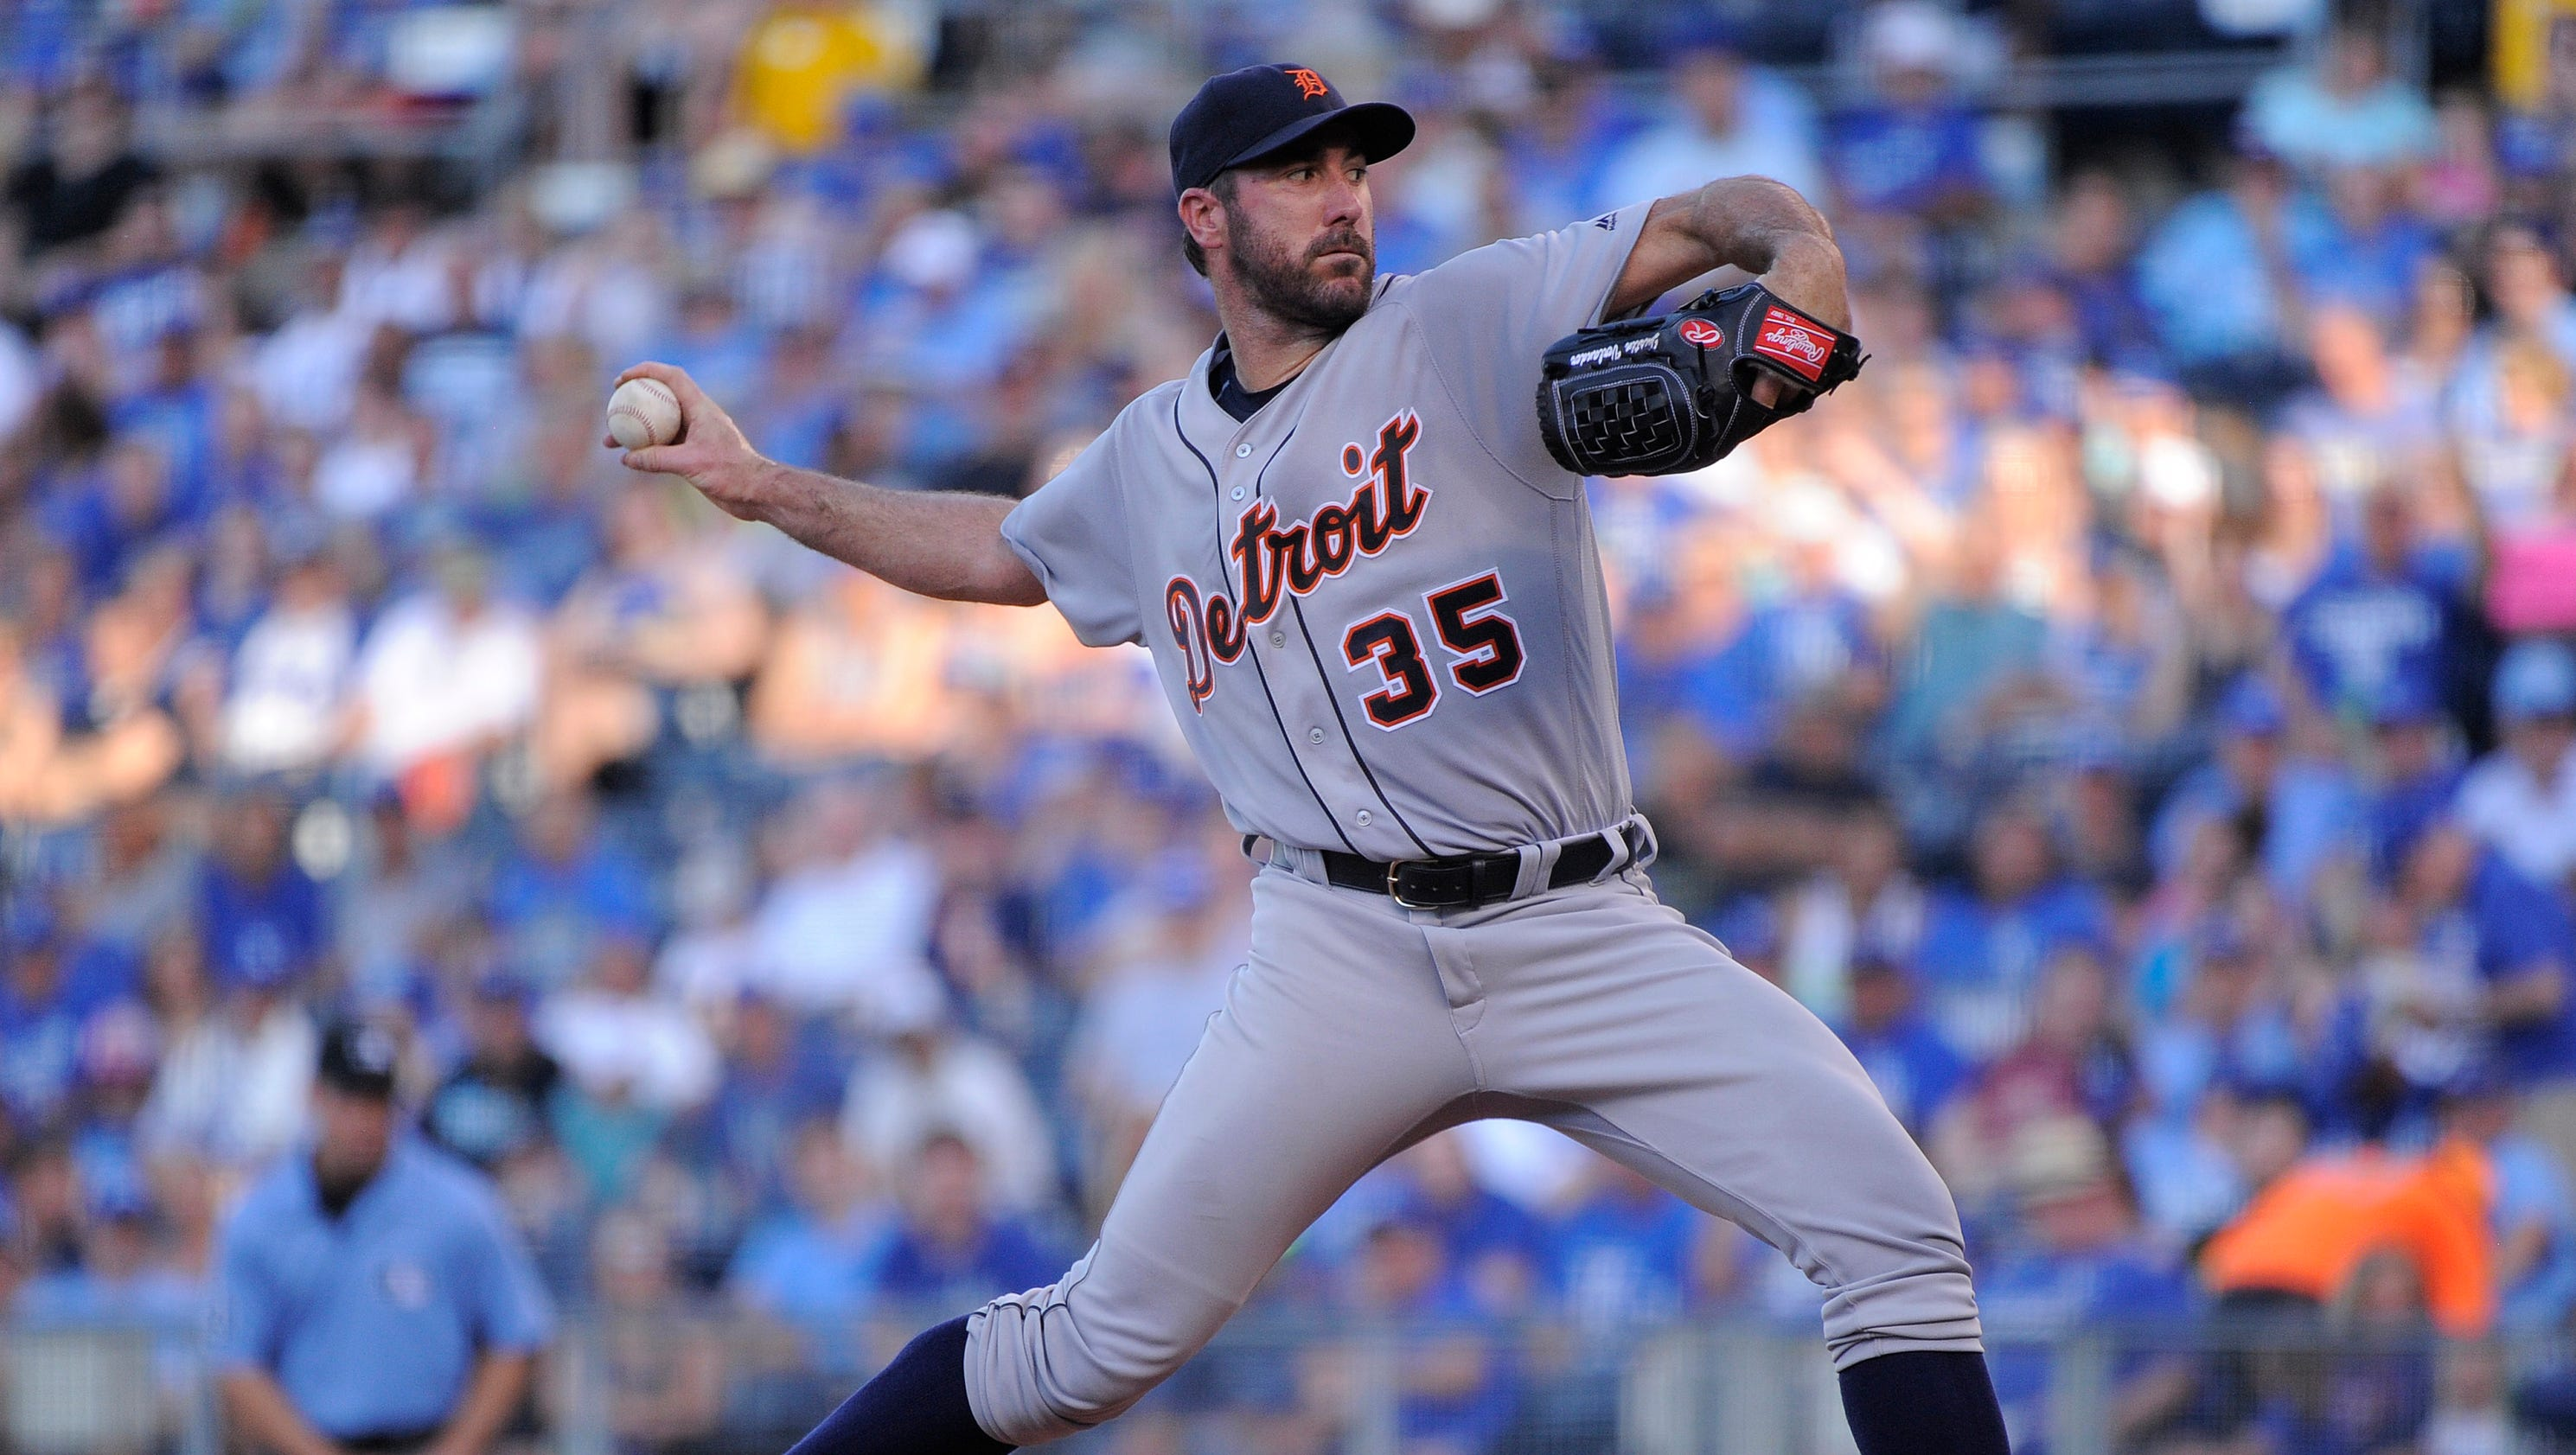 Live Tigers blog: Six HRs help in Tigers 10-4 win